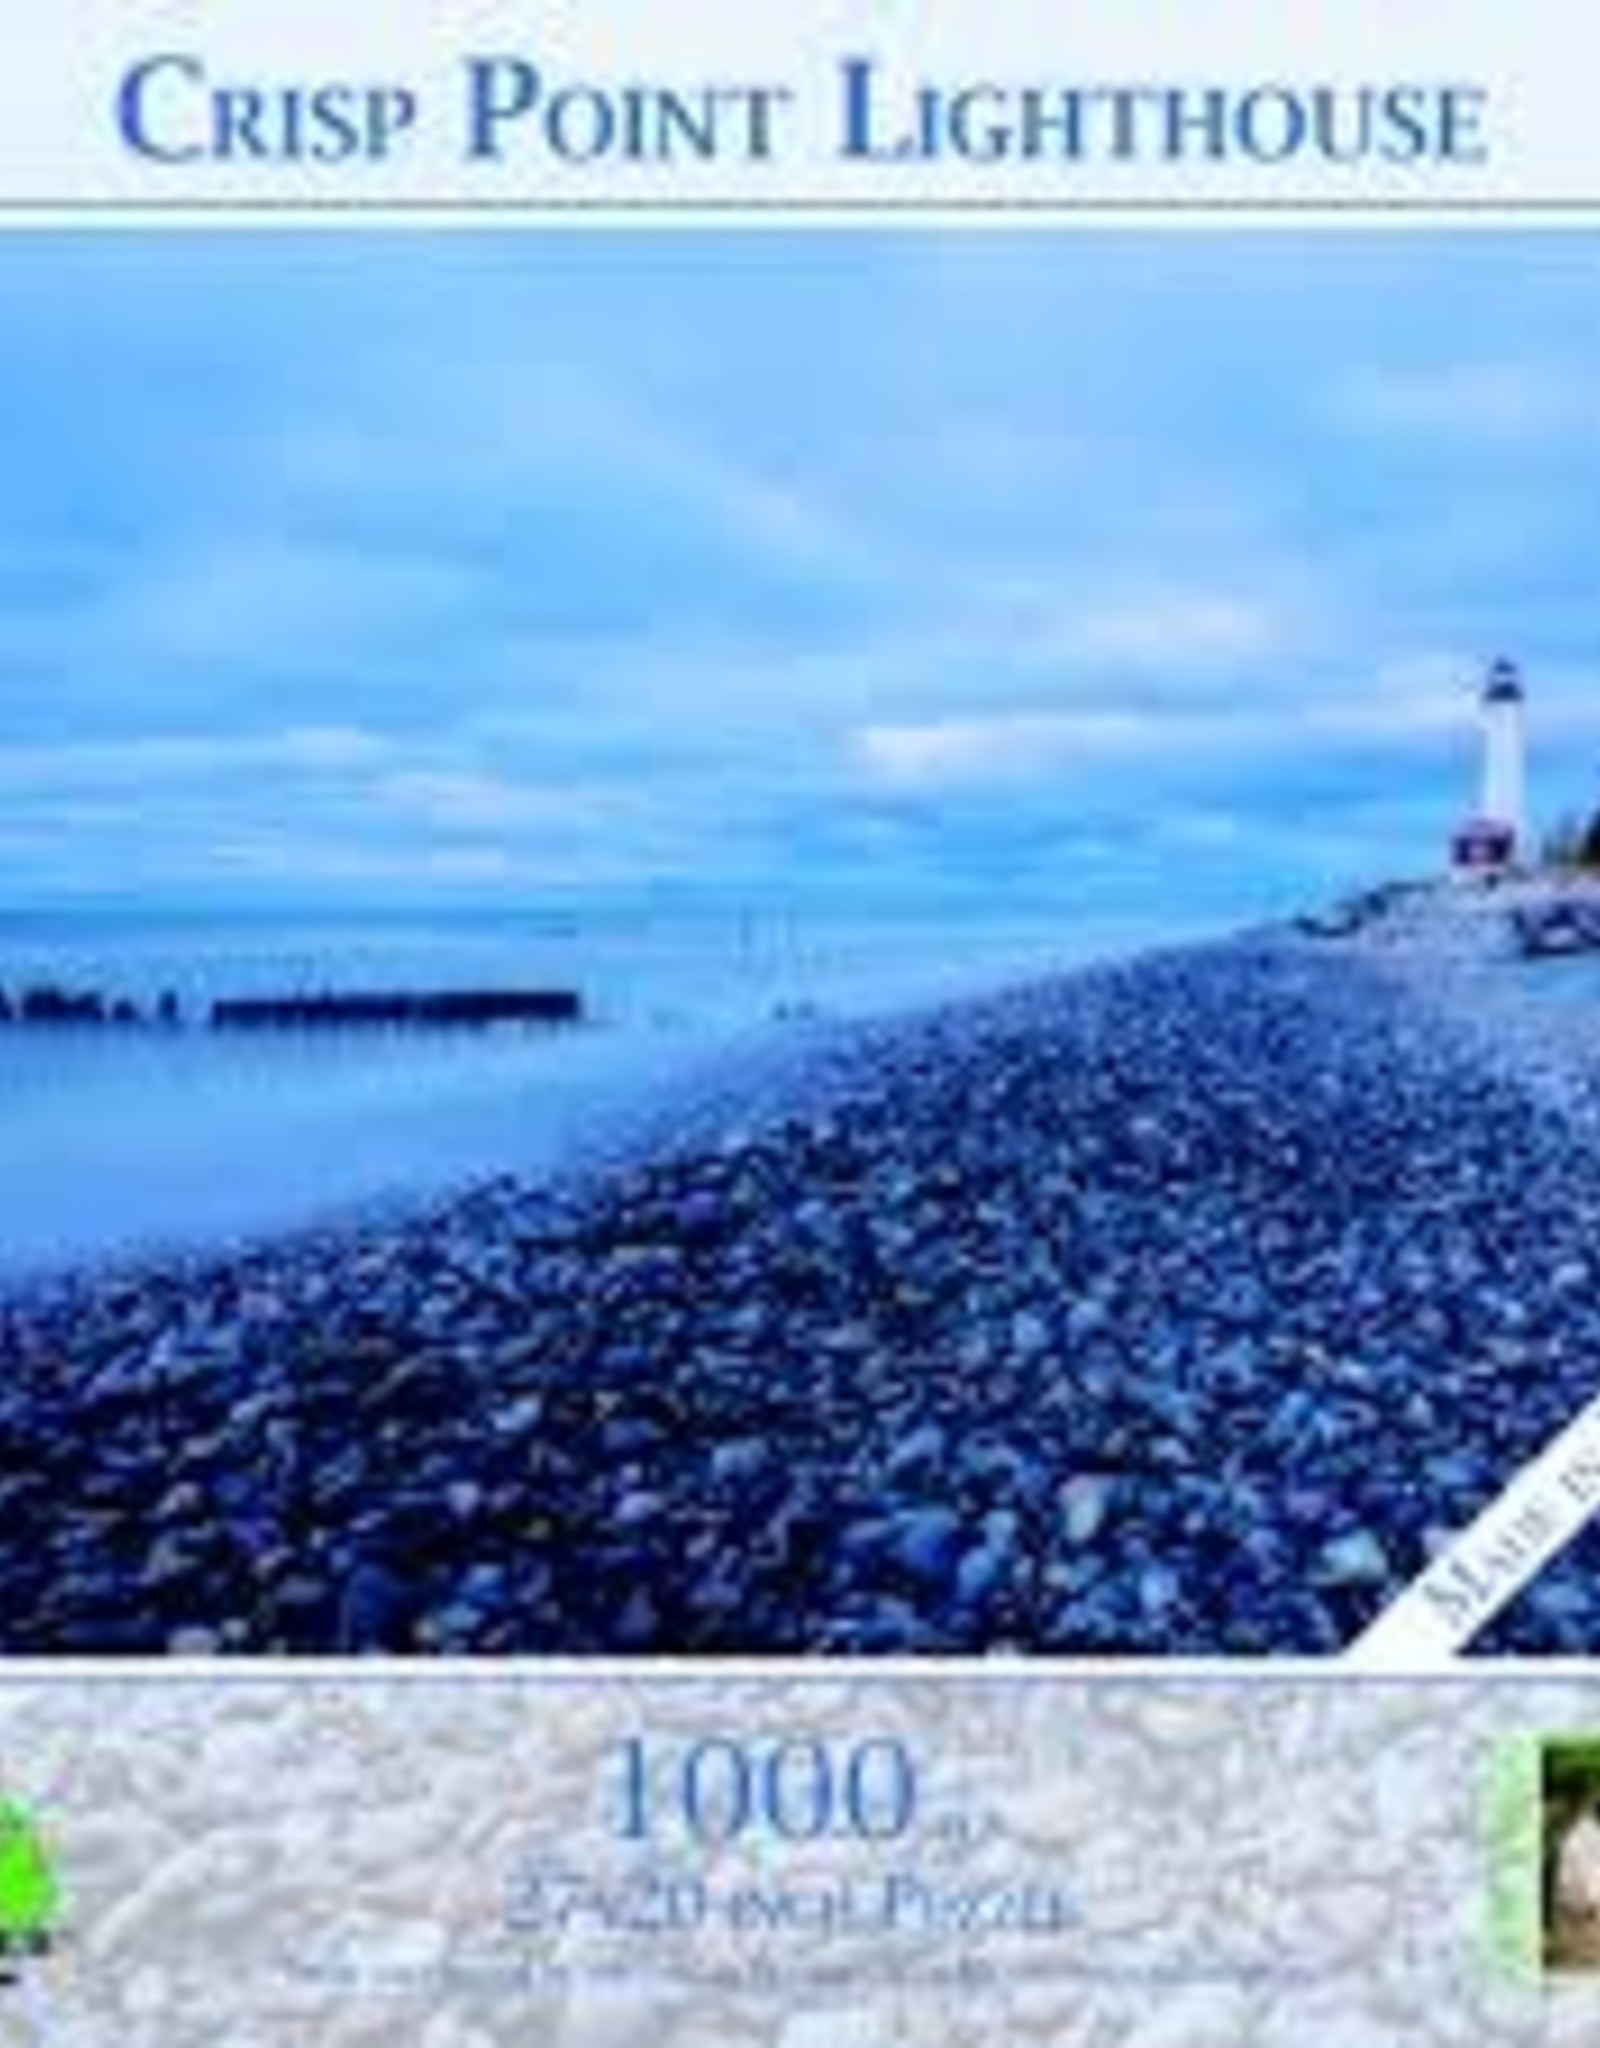 MI Puzzles (Phil Stagg Photography) 1000 Pc Puzzle Crisp Point Lighthouse